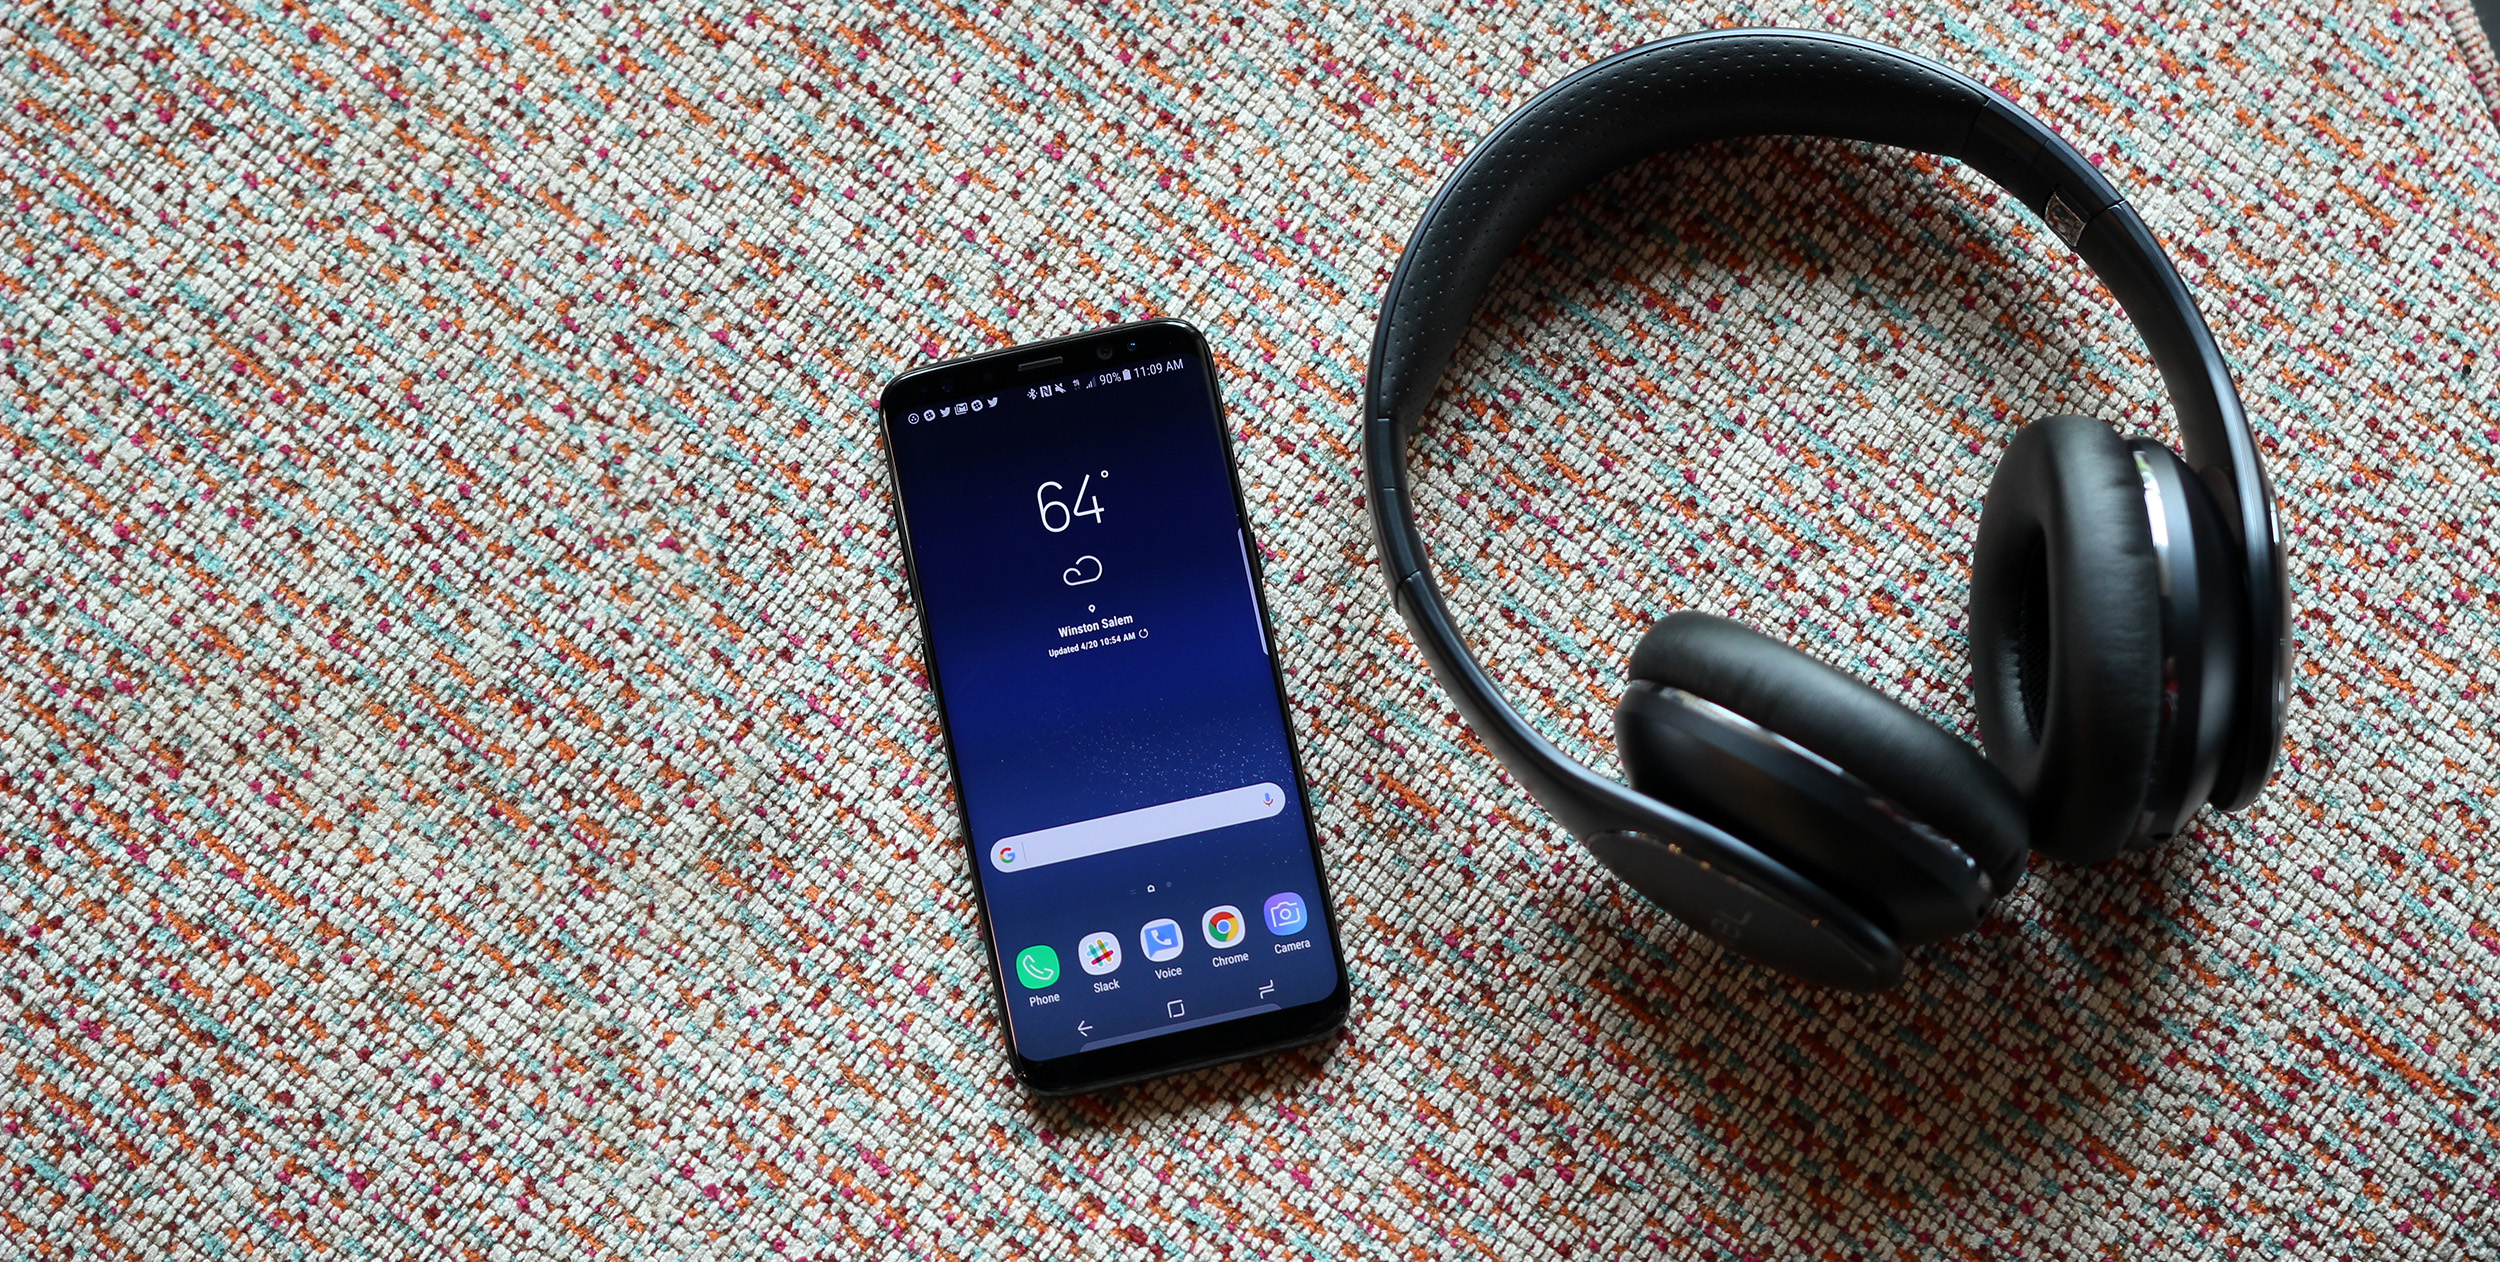 Galaxy S8, S8+ update rolls out w/ July patch, QR scanner